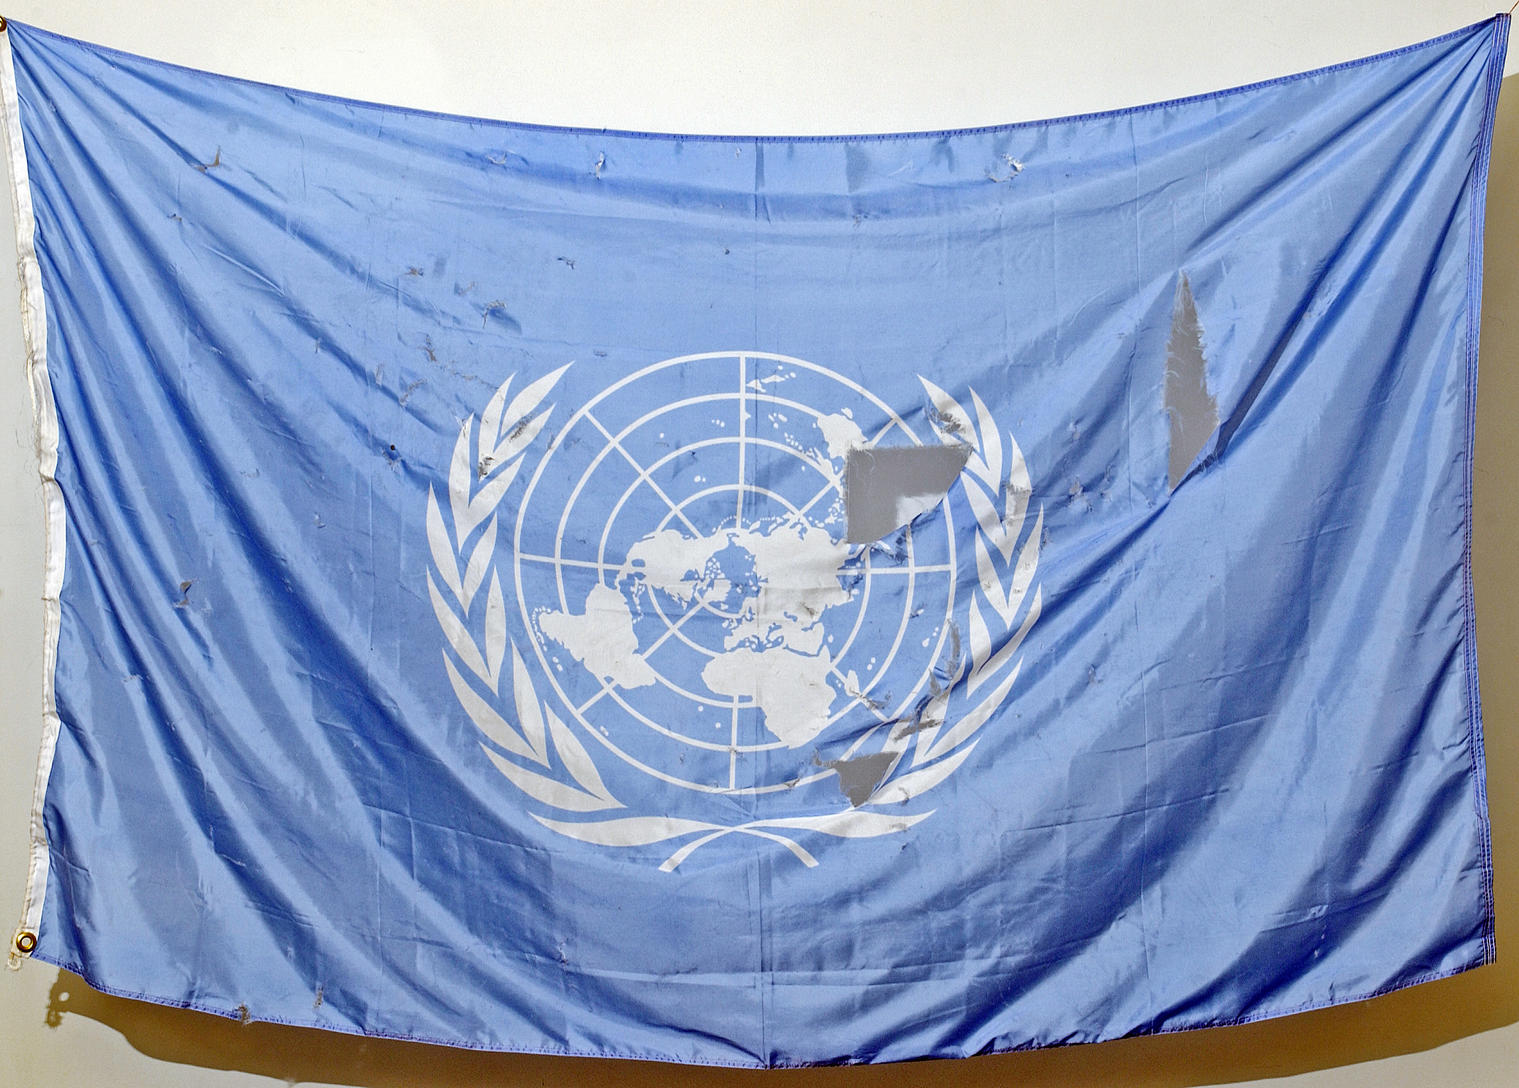 UN Flag Recovered From Debris of Bombed Baghdad UN Office